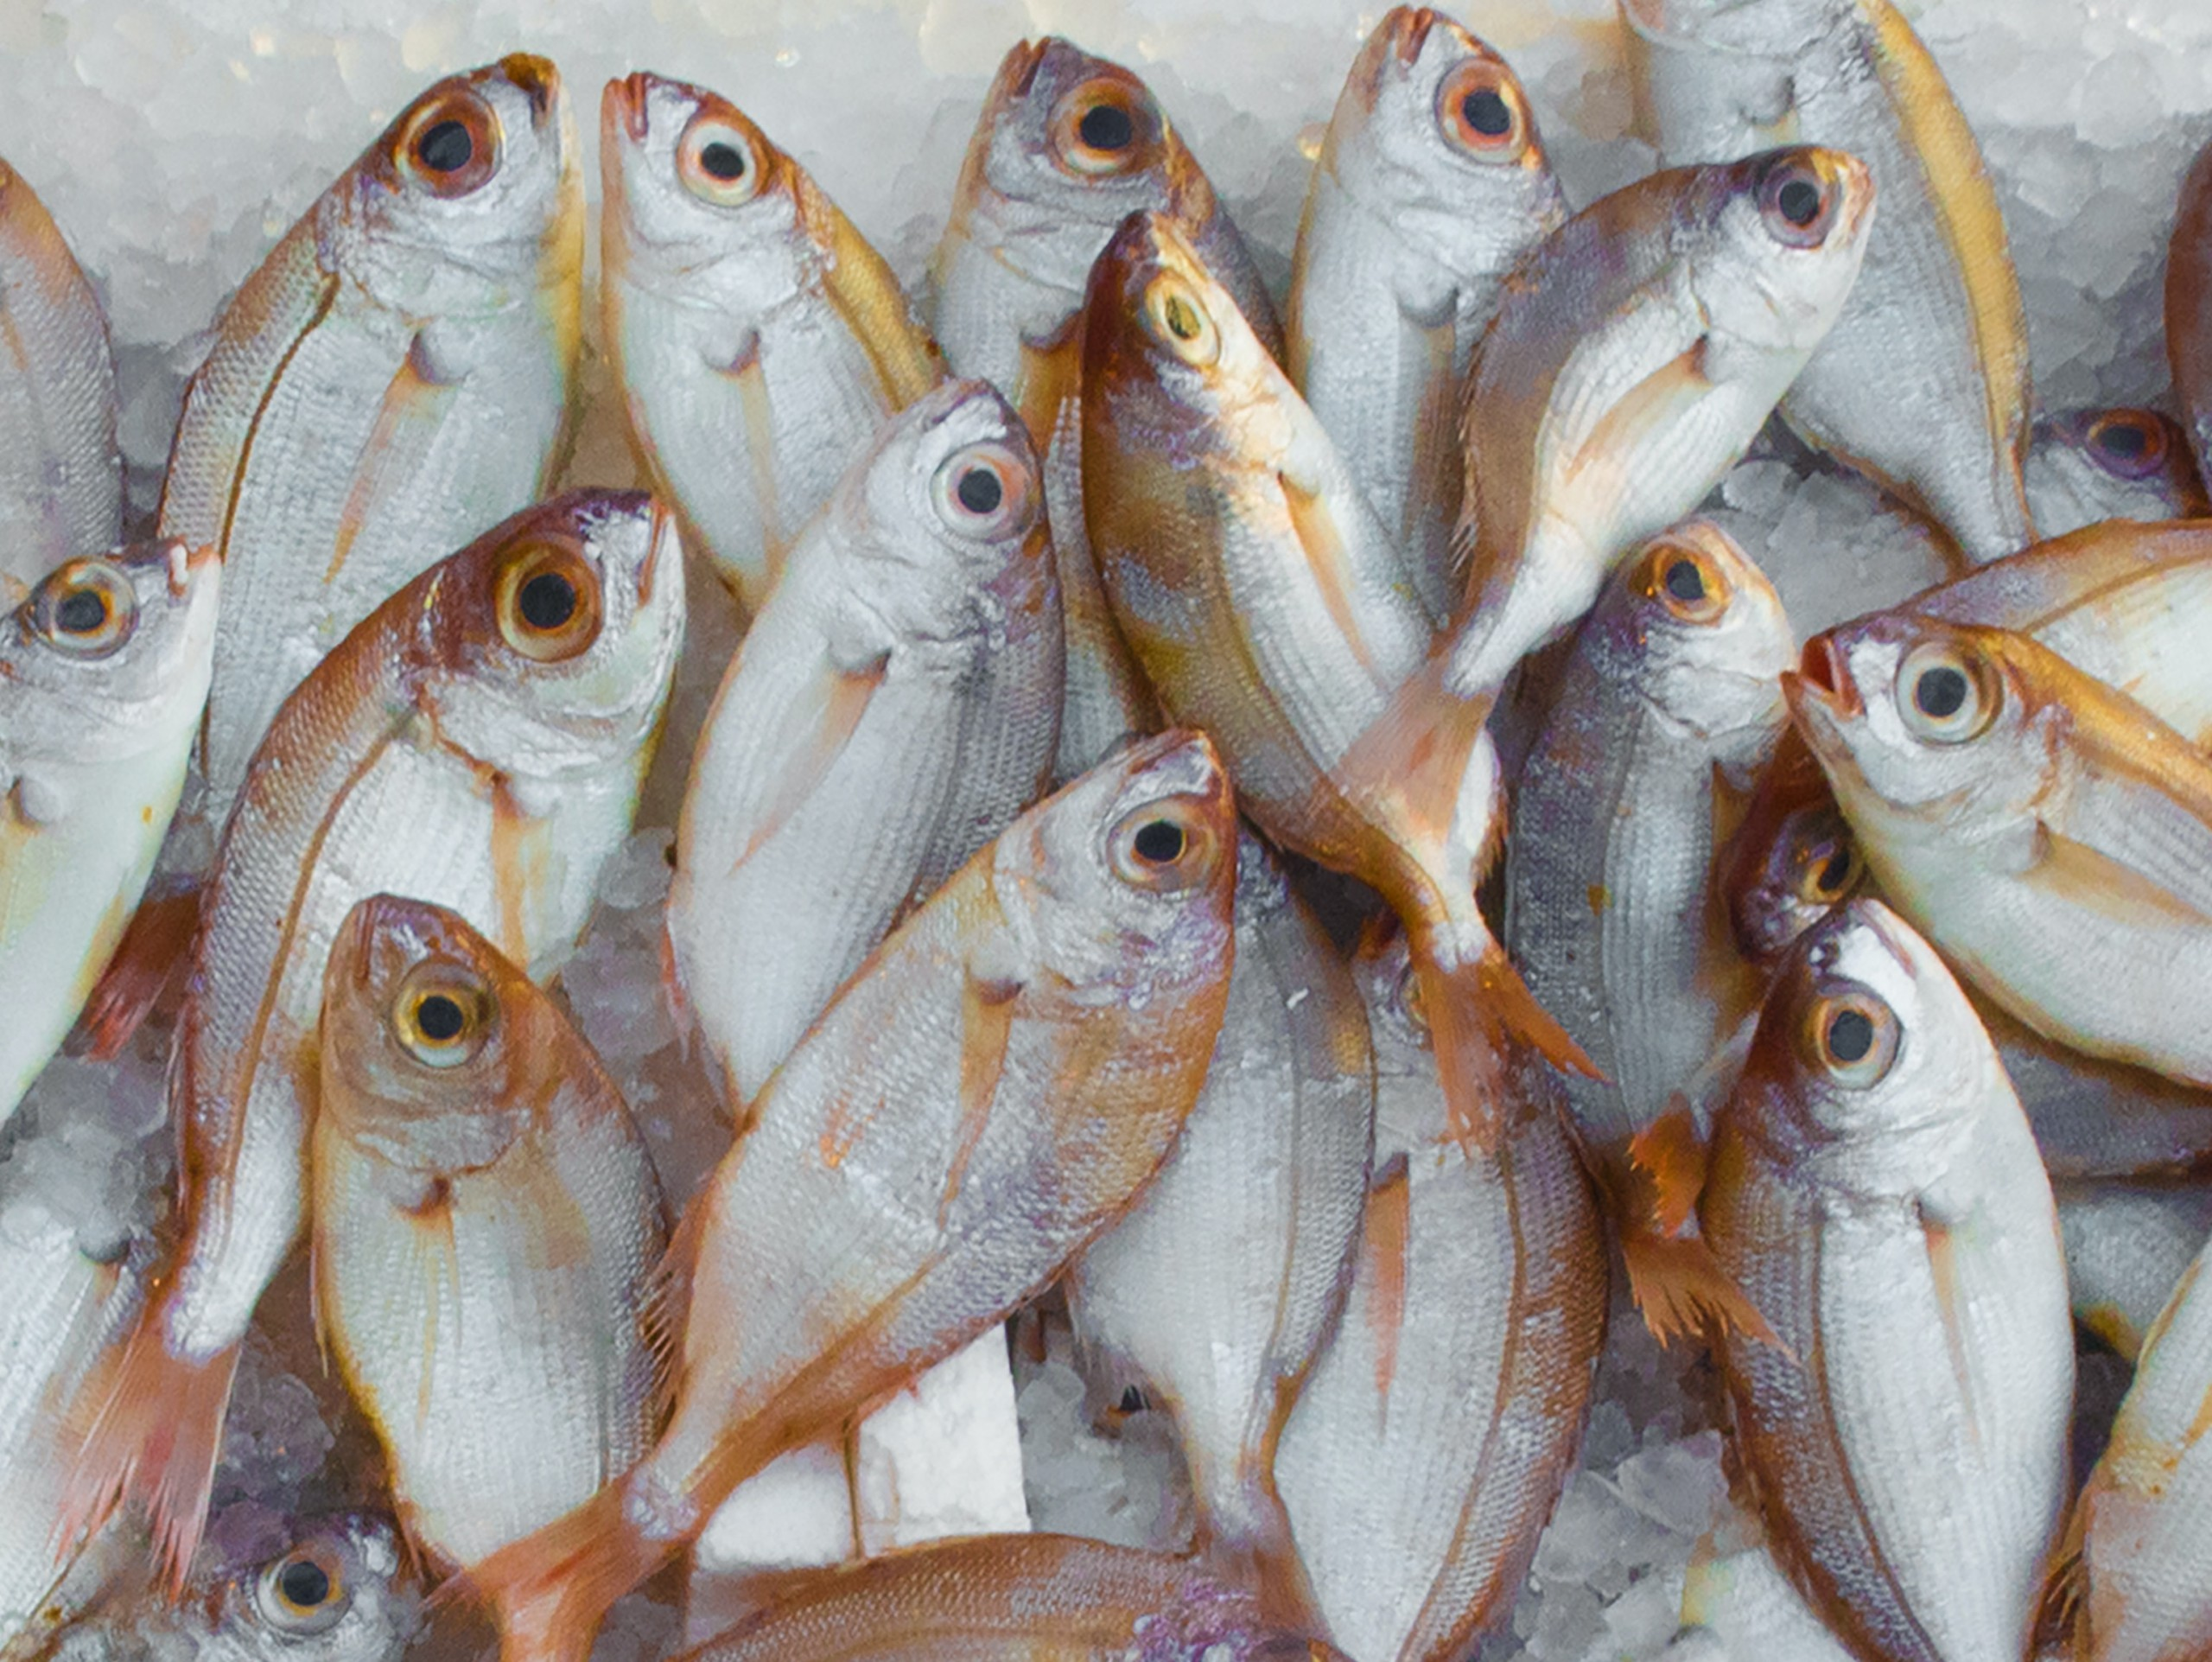 Seafood traceability software